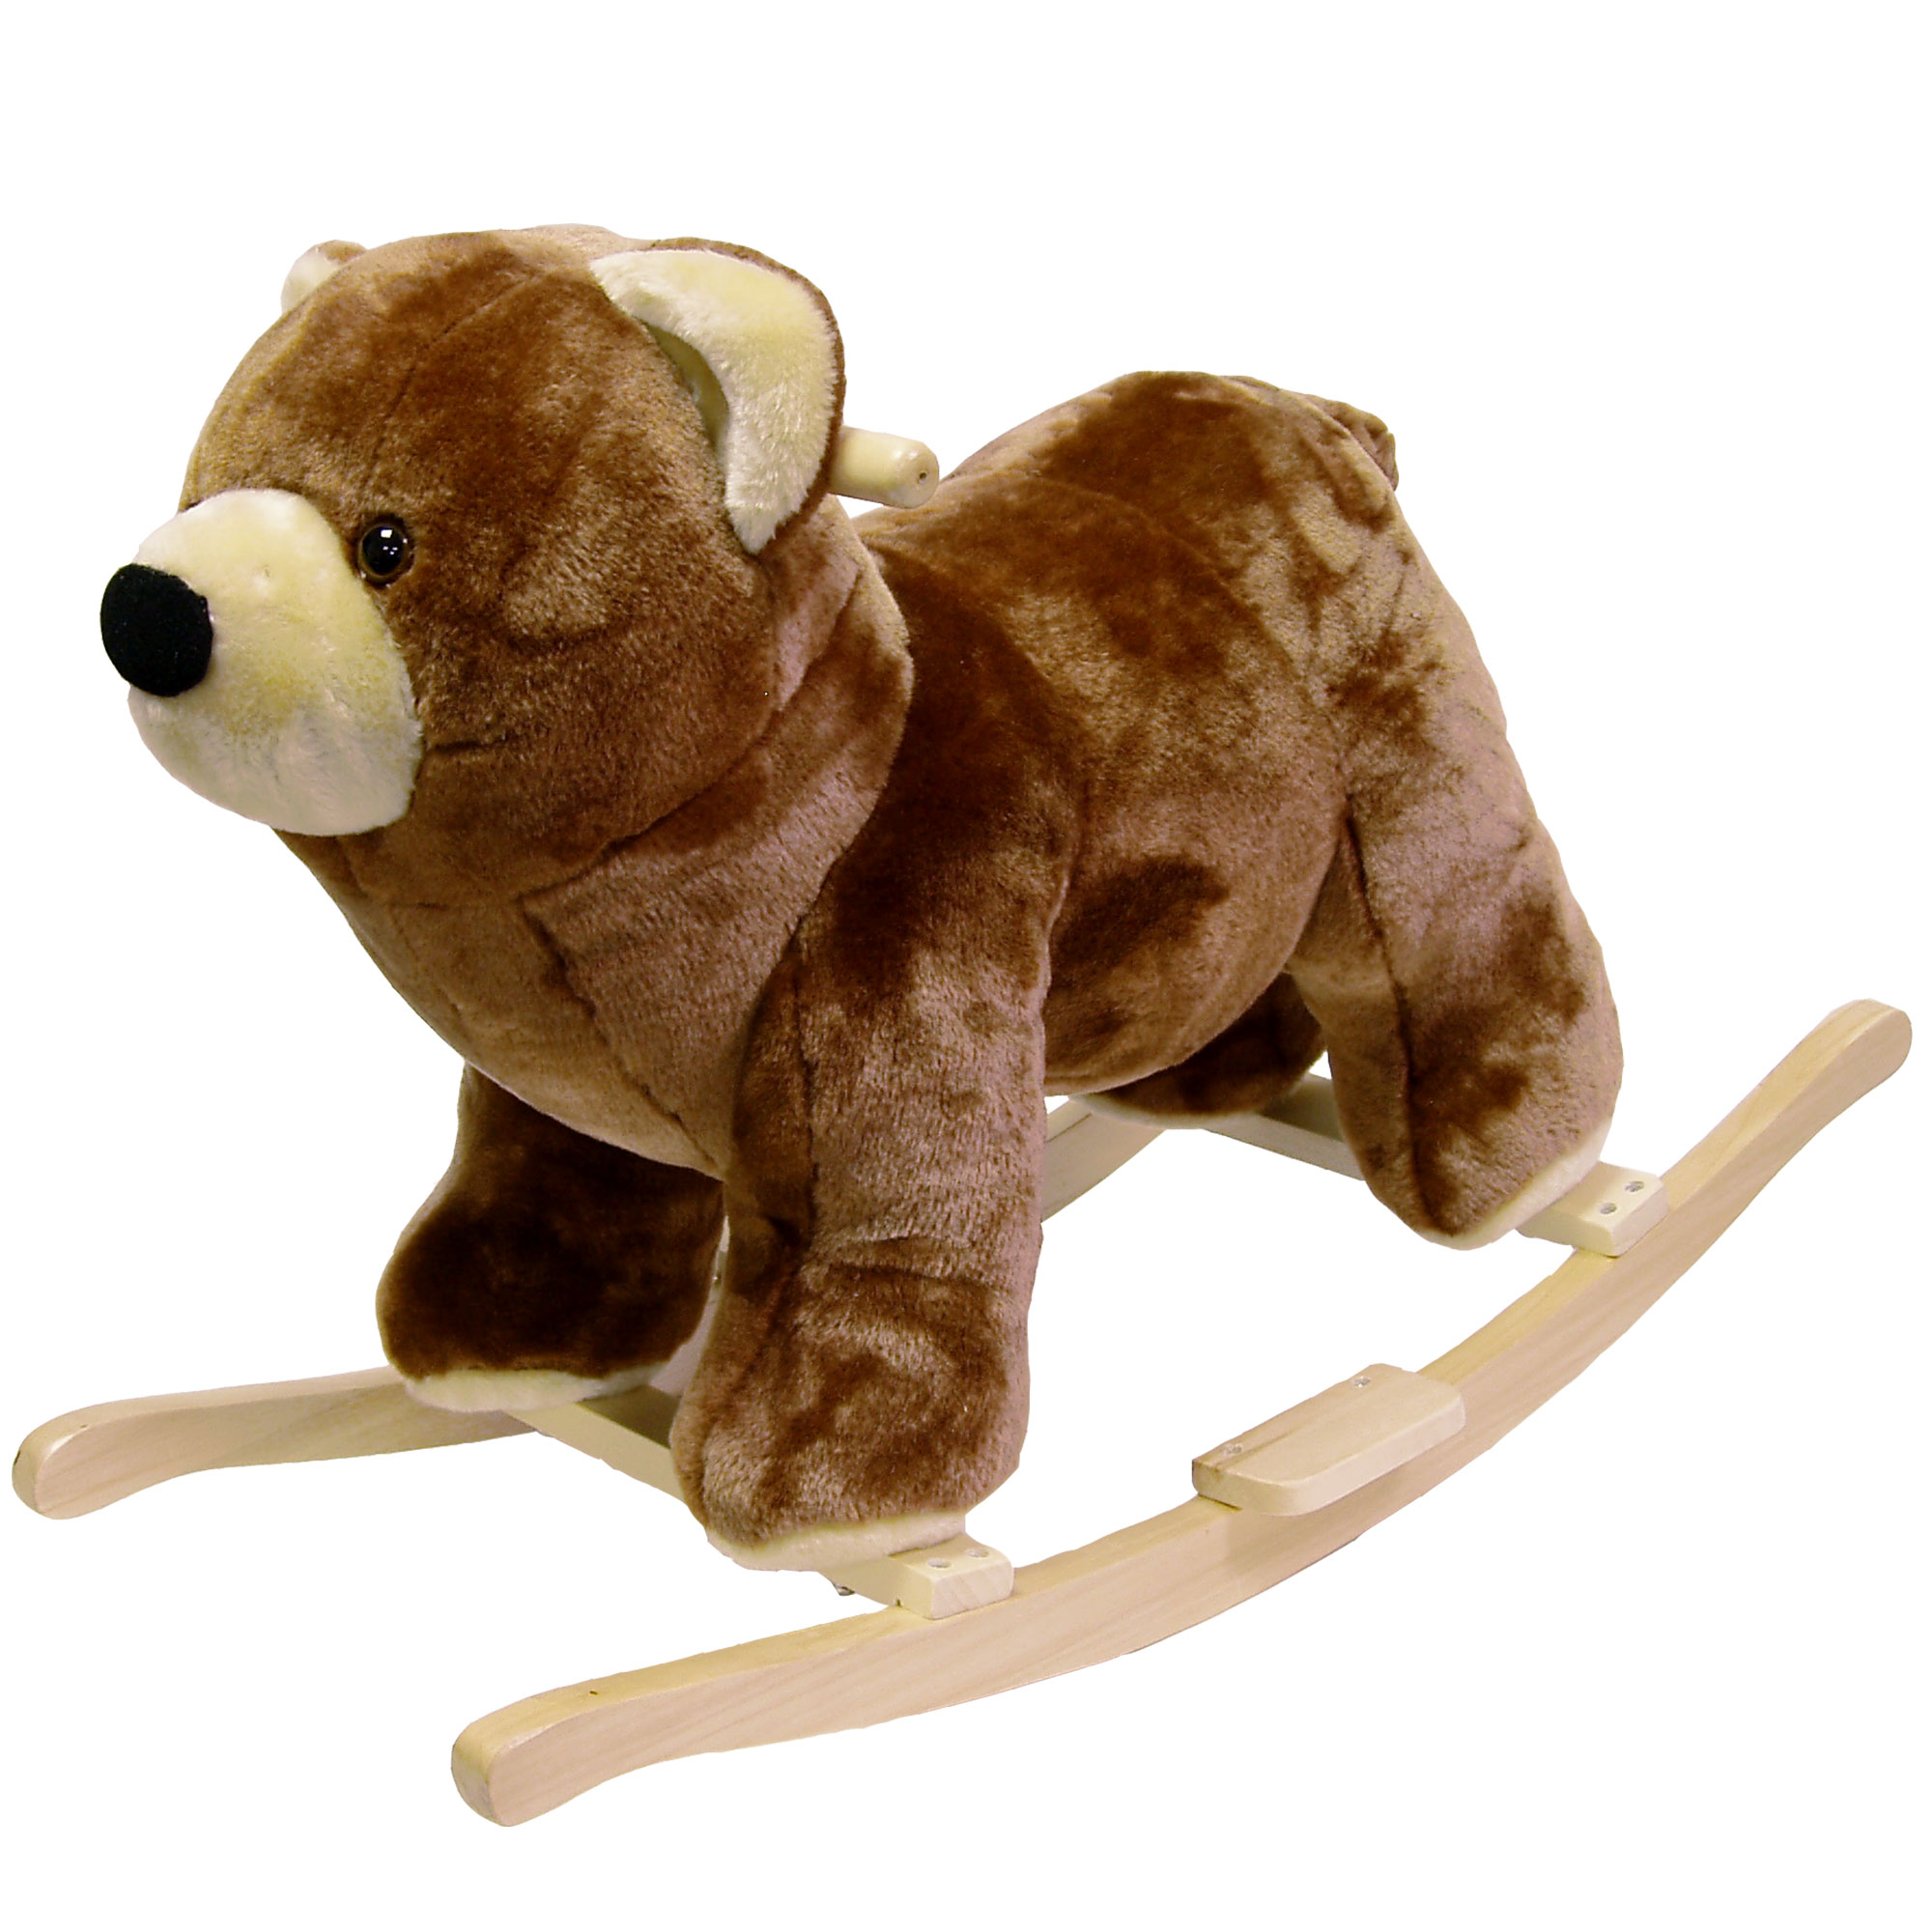 Bear Plush Rocking Animal Toy Ride On by Happy Trails